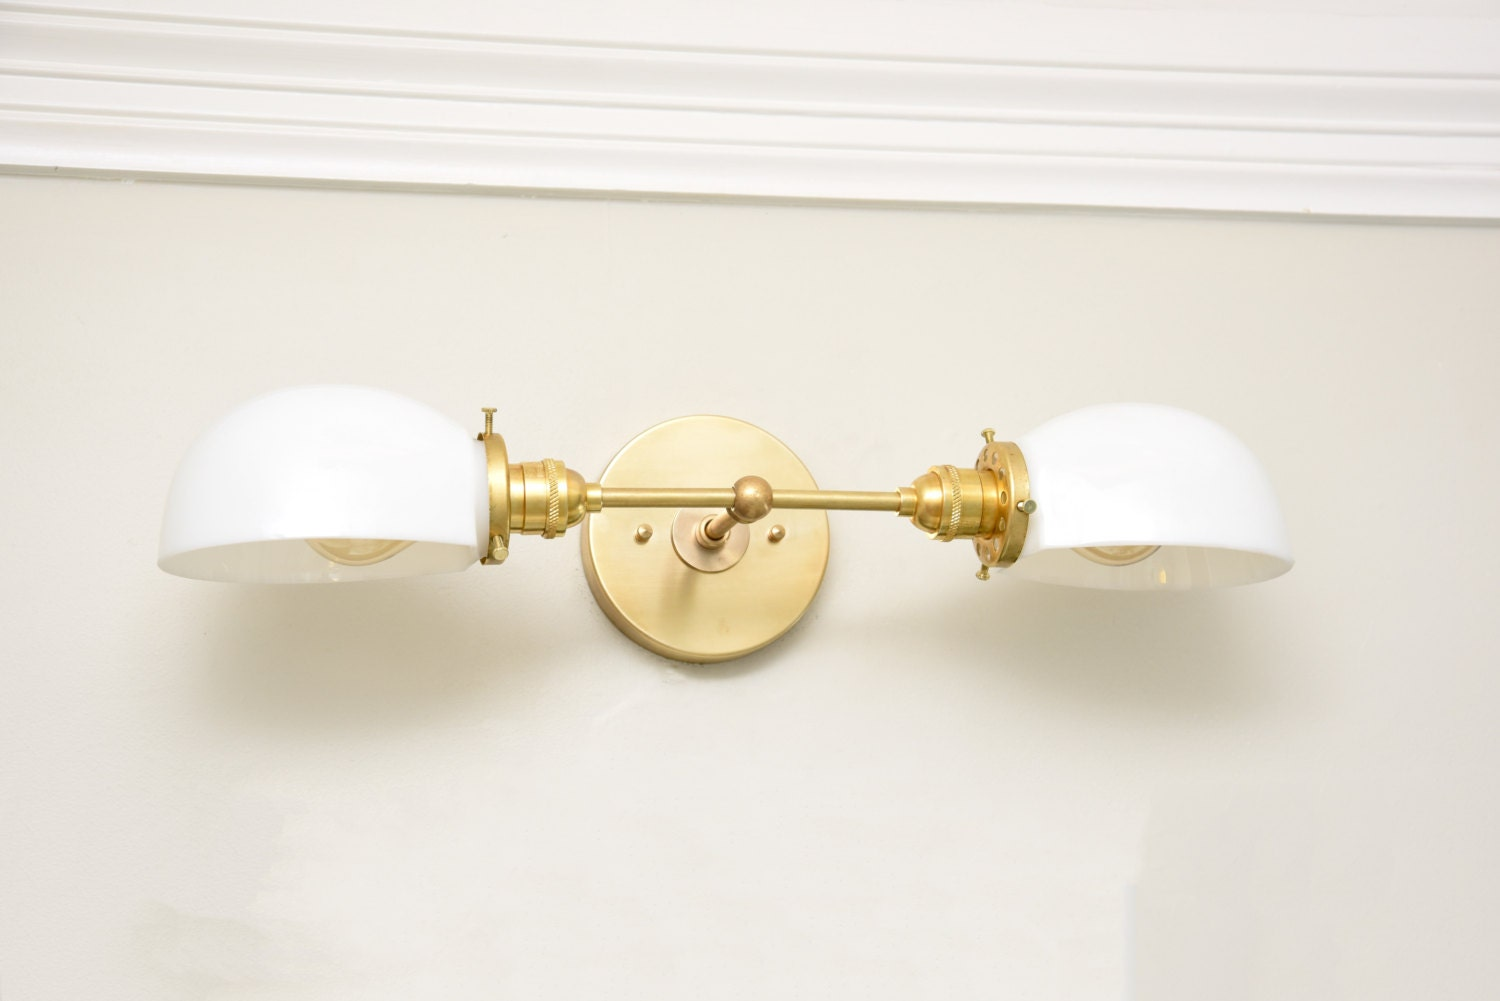 Gold Wall Sconces With Shades : Free Shipping! Wall Sconce Vanity Gold Brass 2 Bulb With White Opal Glass Shades Modern Mid ...